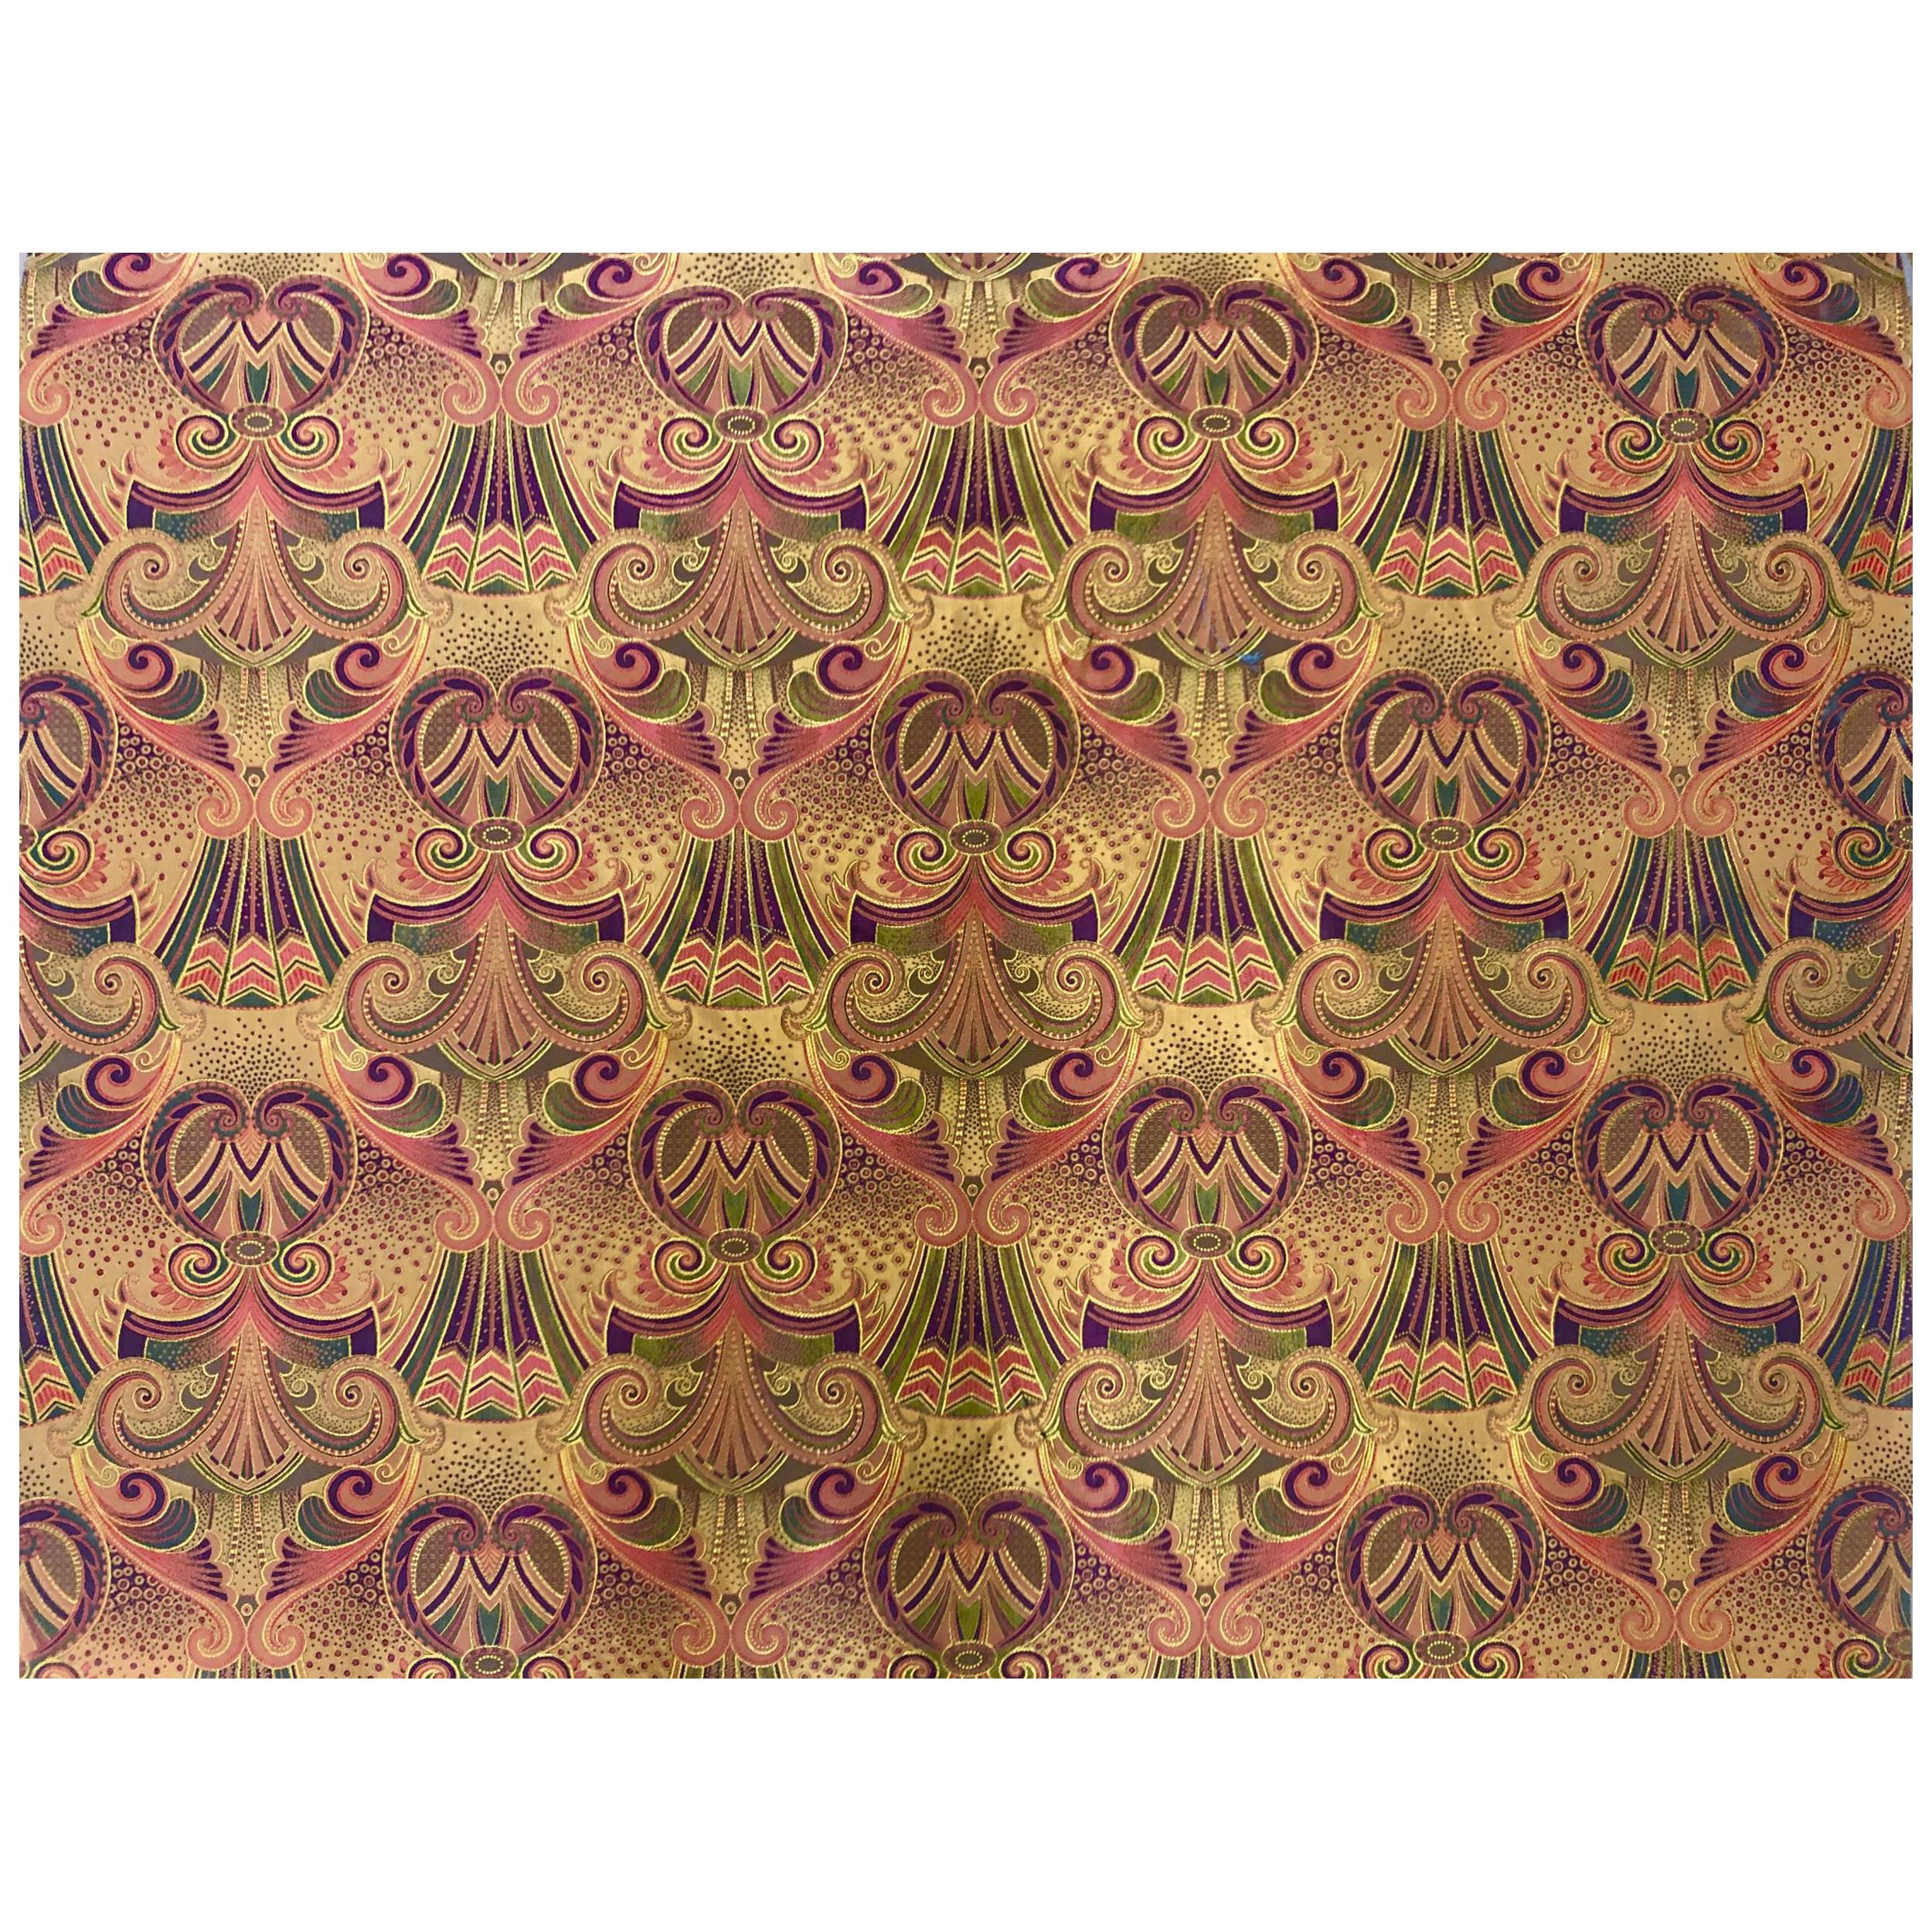 Antique Art New Vouge Sateen Fabric with Gold Accents